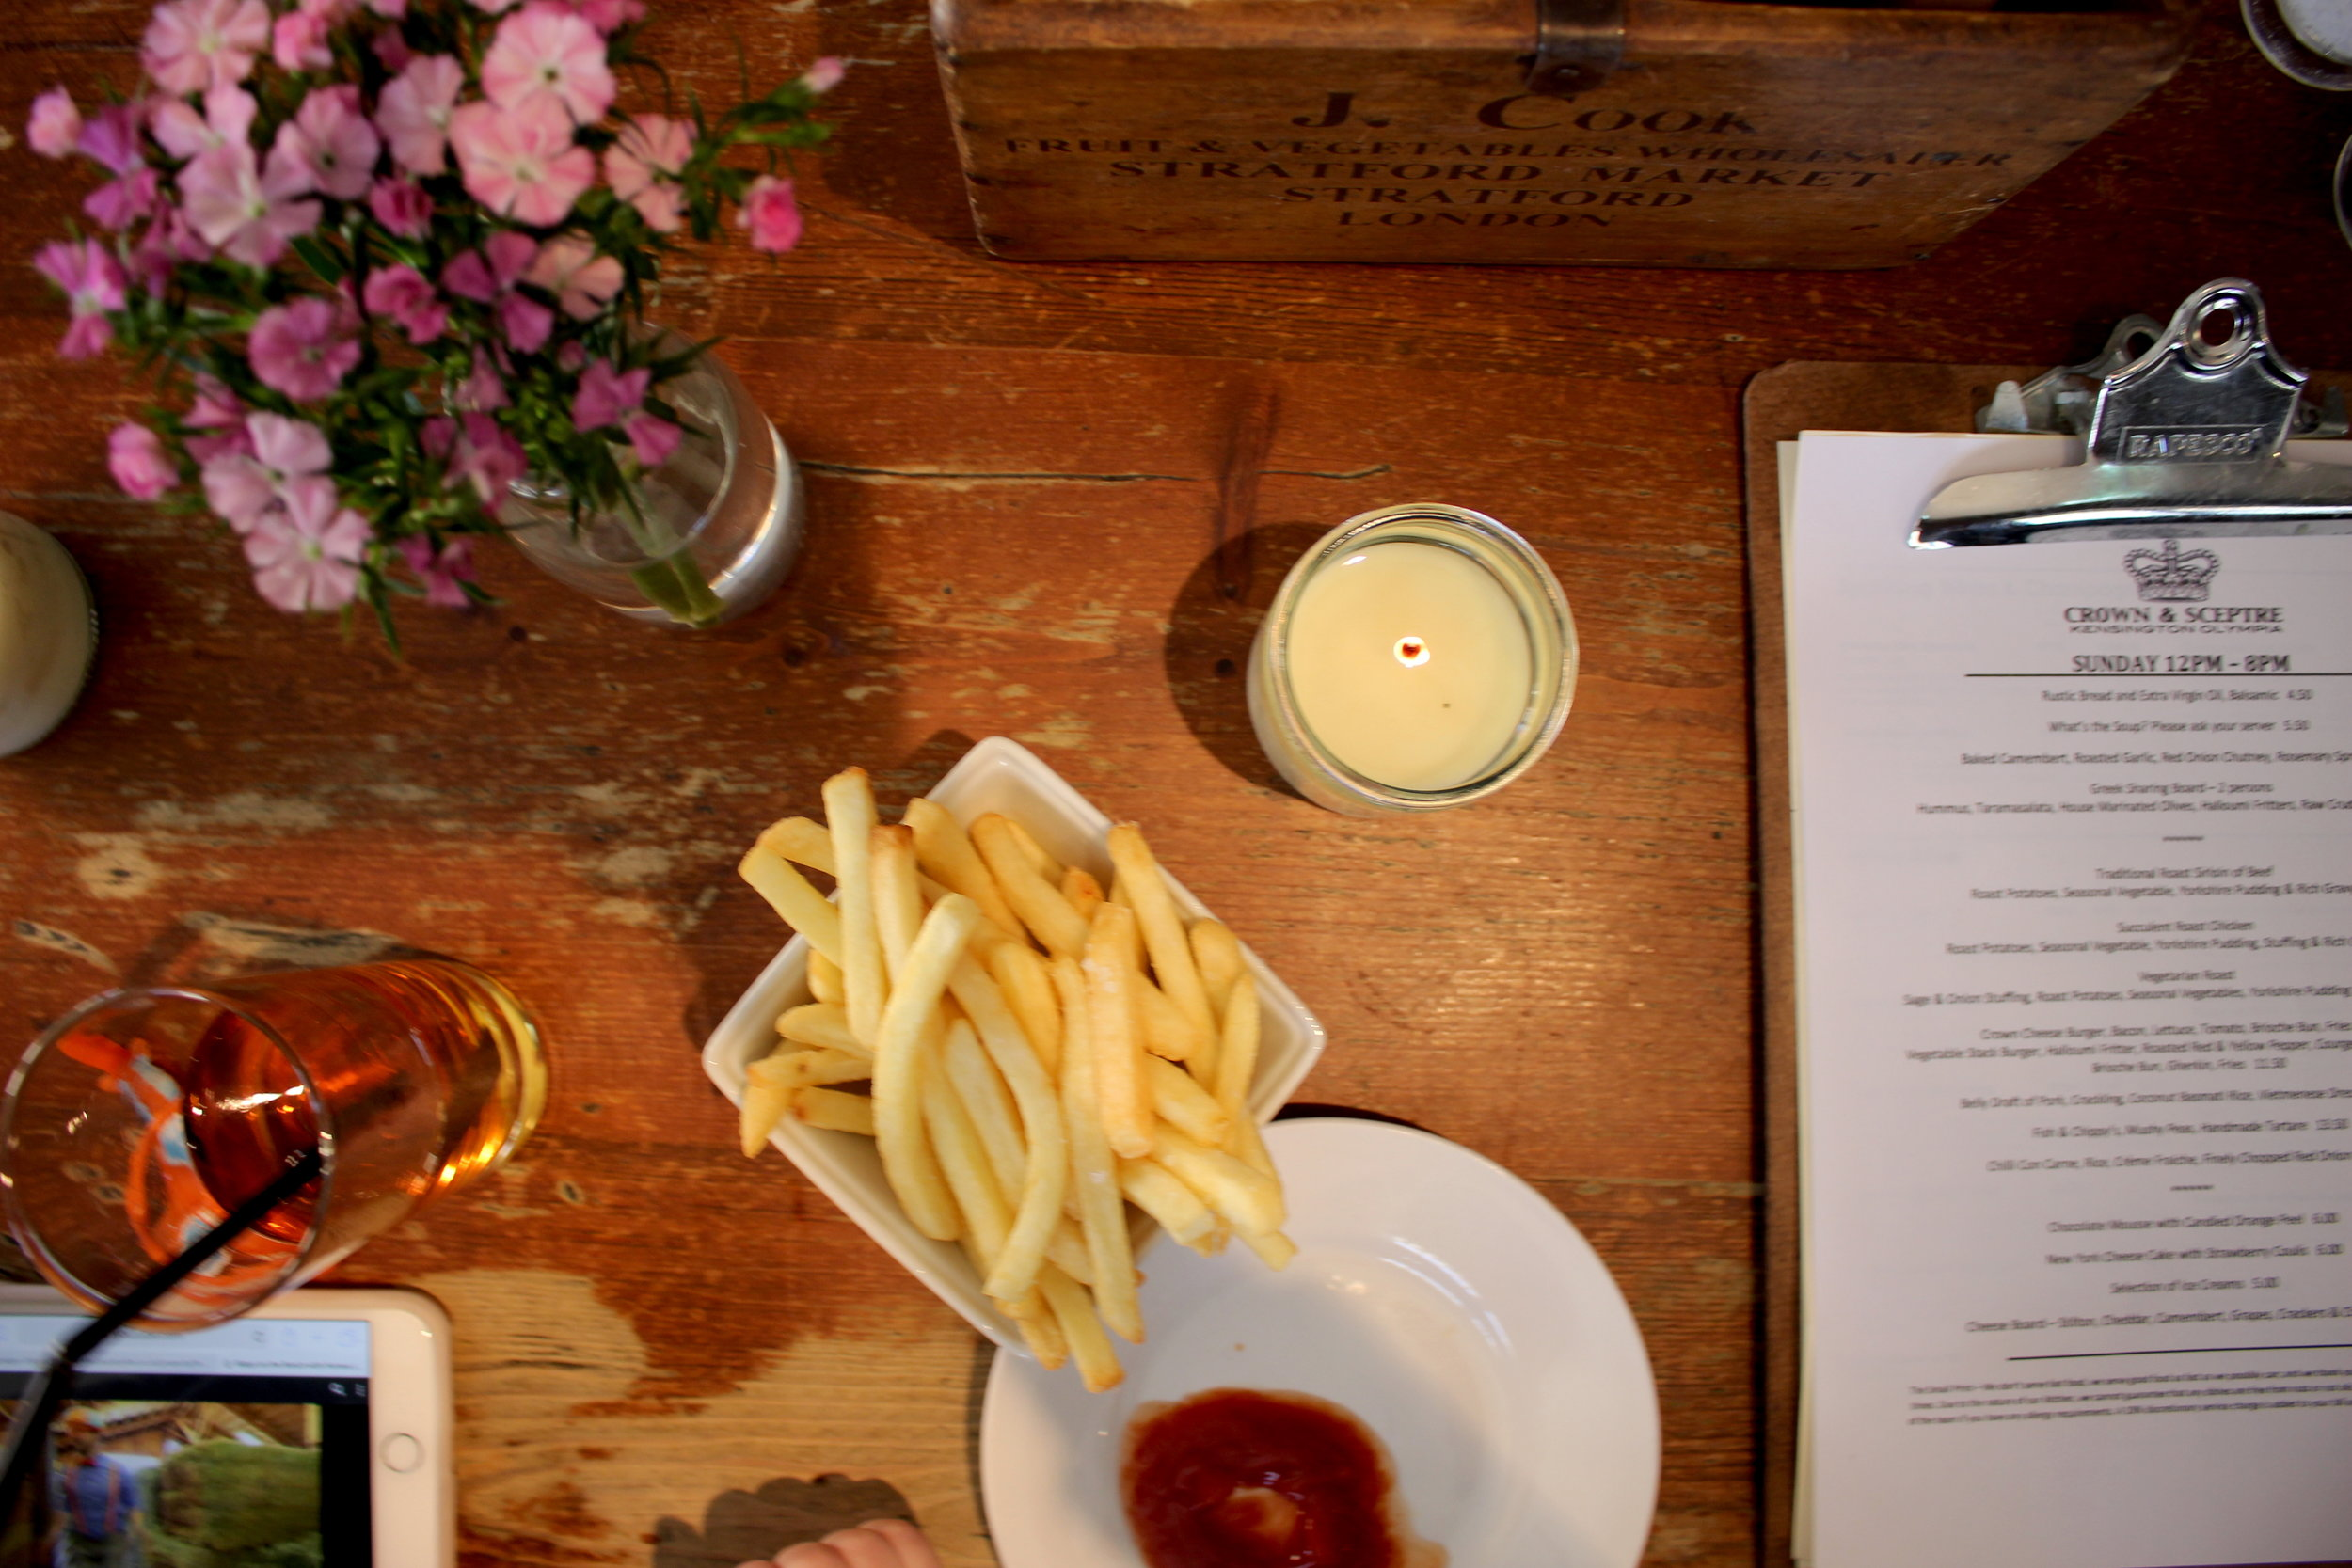 Best Sunday Roast London: The Crown and Sceptre Pub by Holland Park